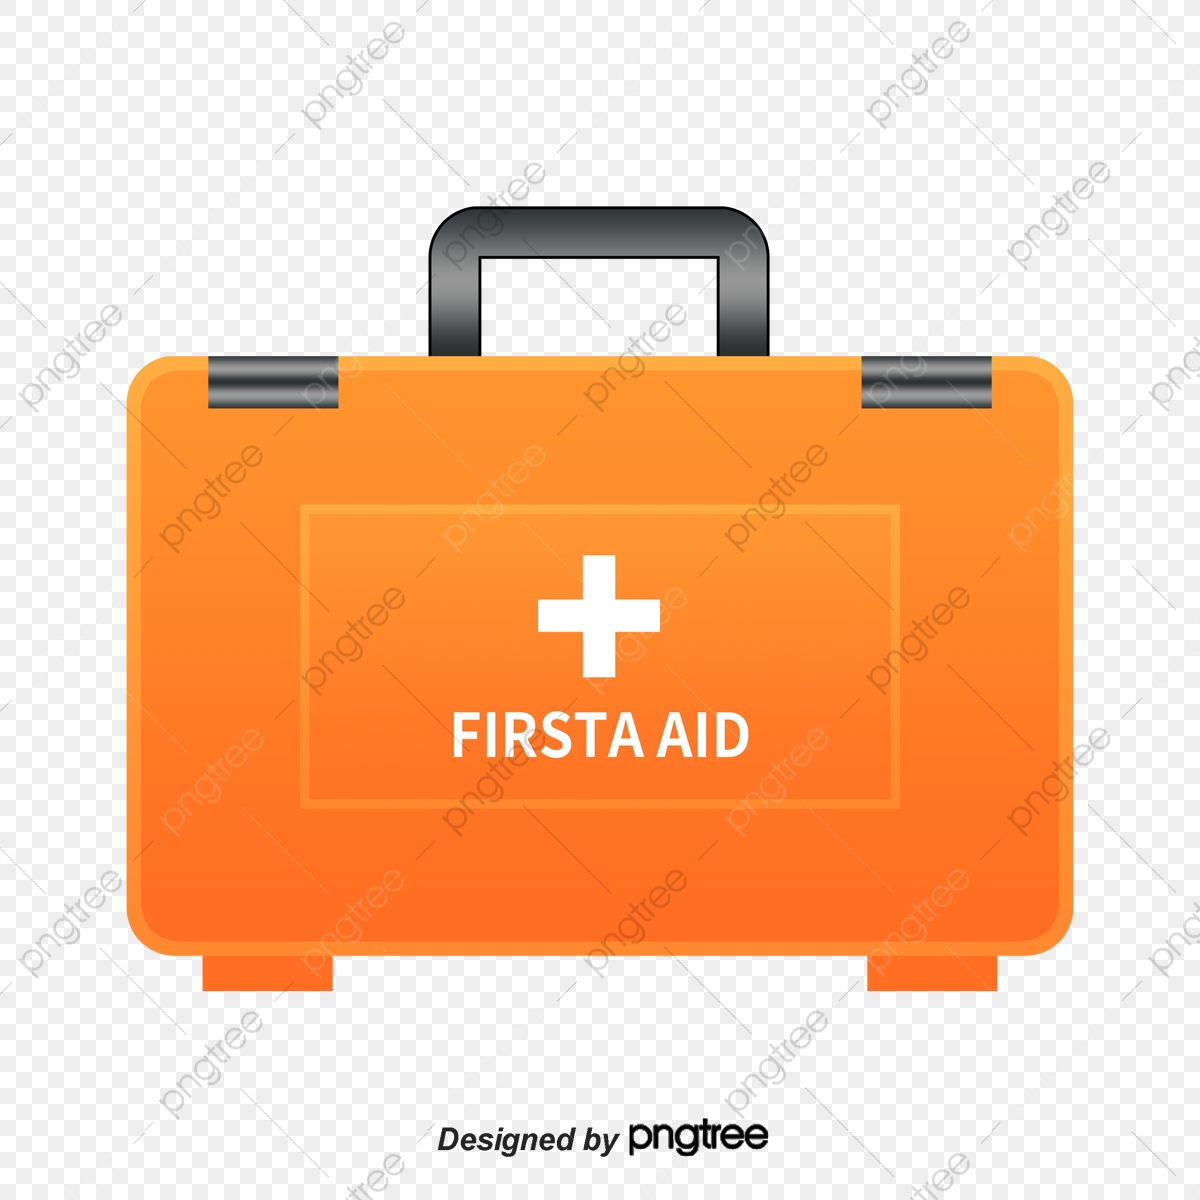 hight resolution of commercial use resource upgrade to premium plan and get license authorization upgradenow red first aid